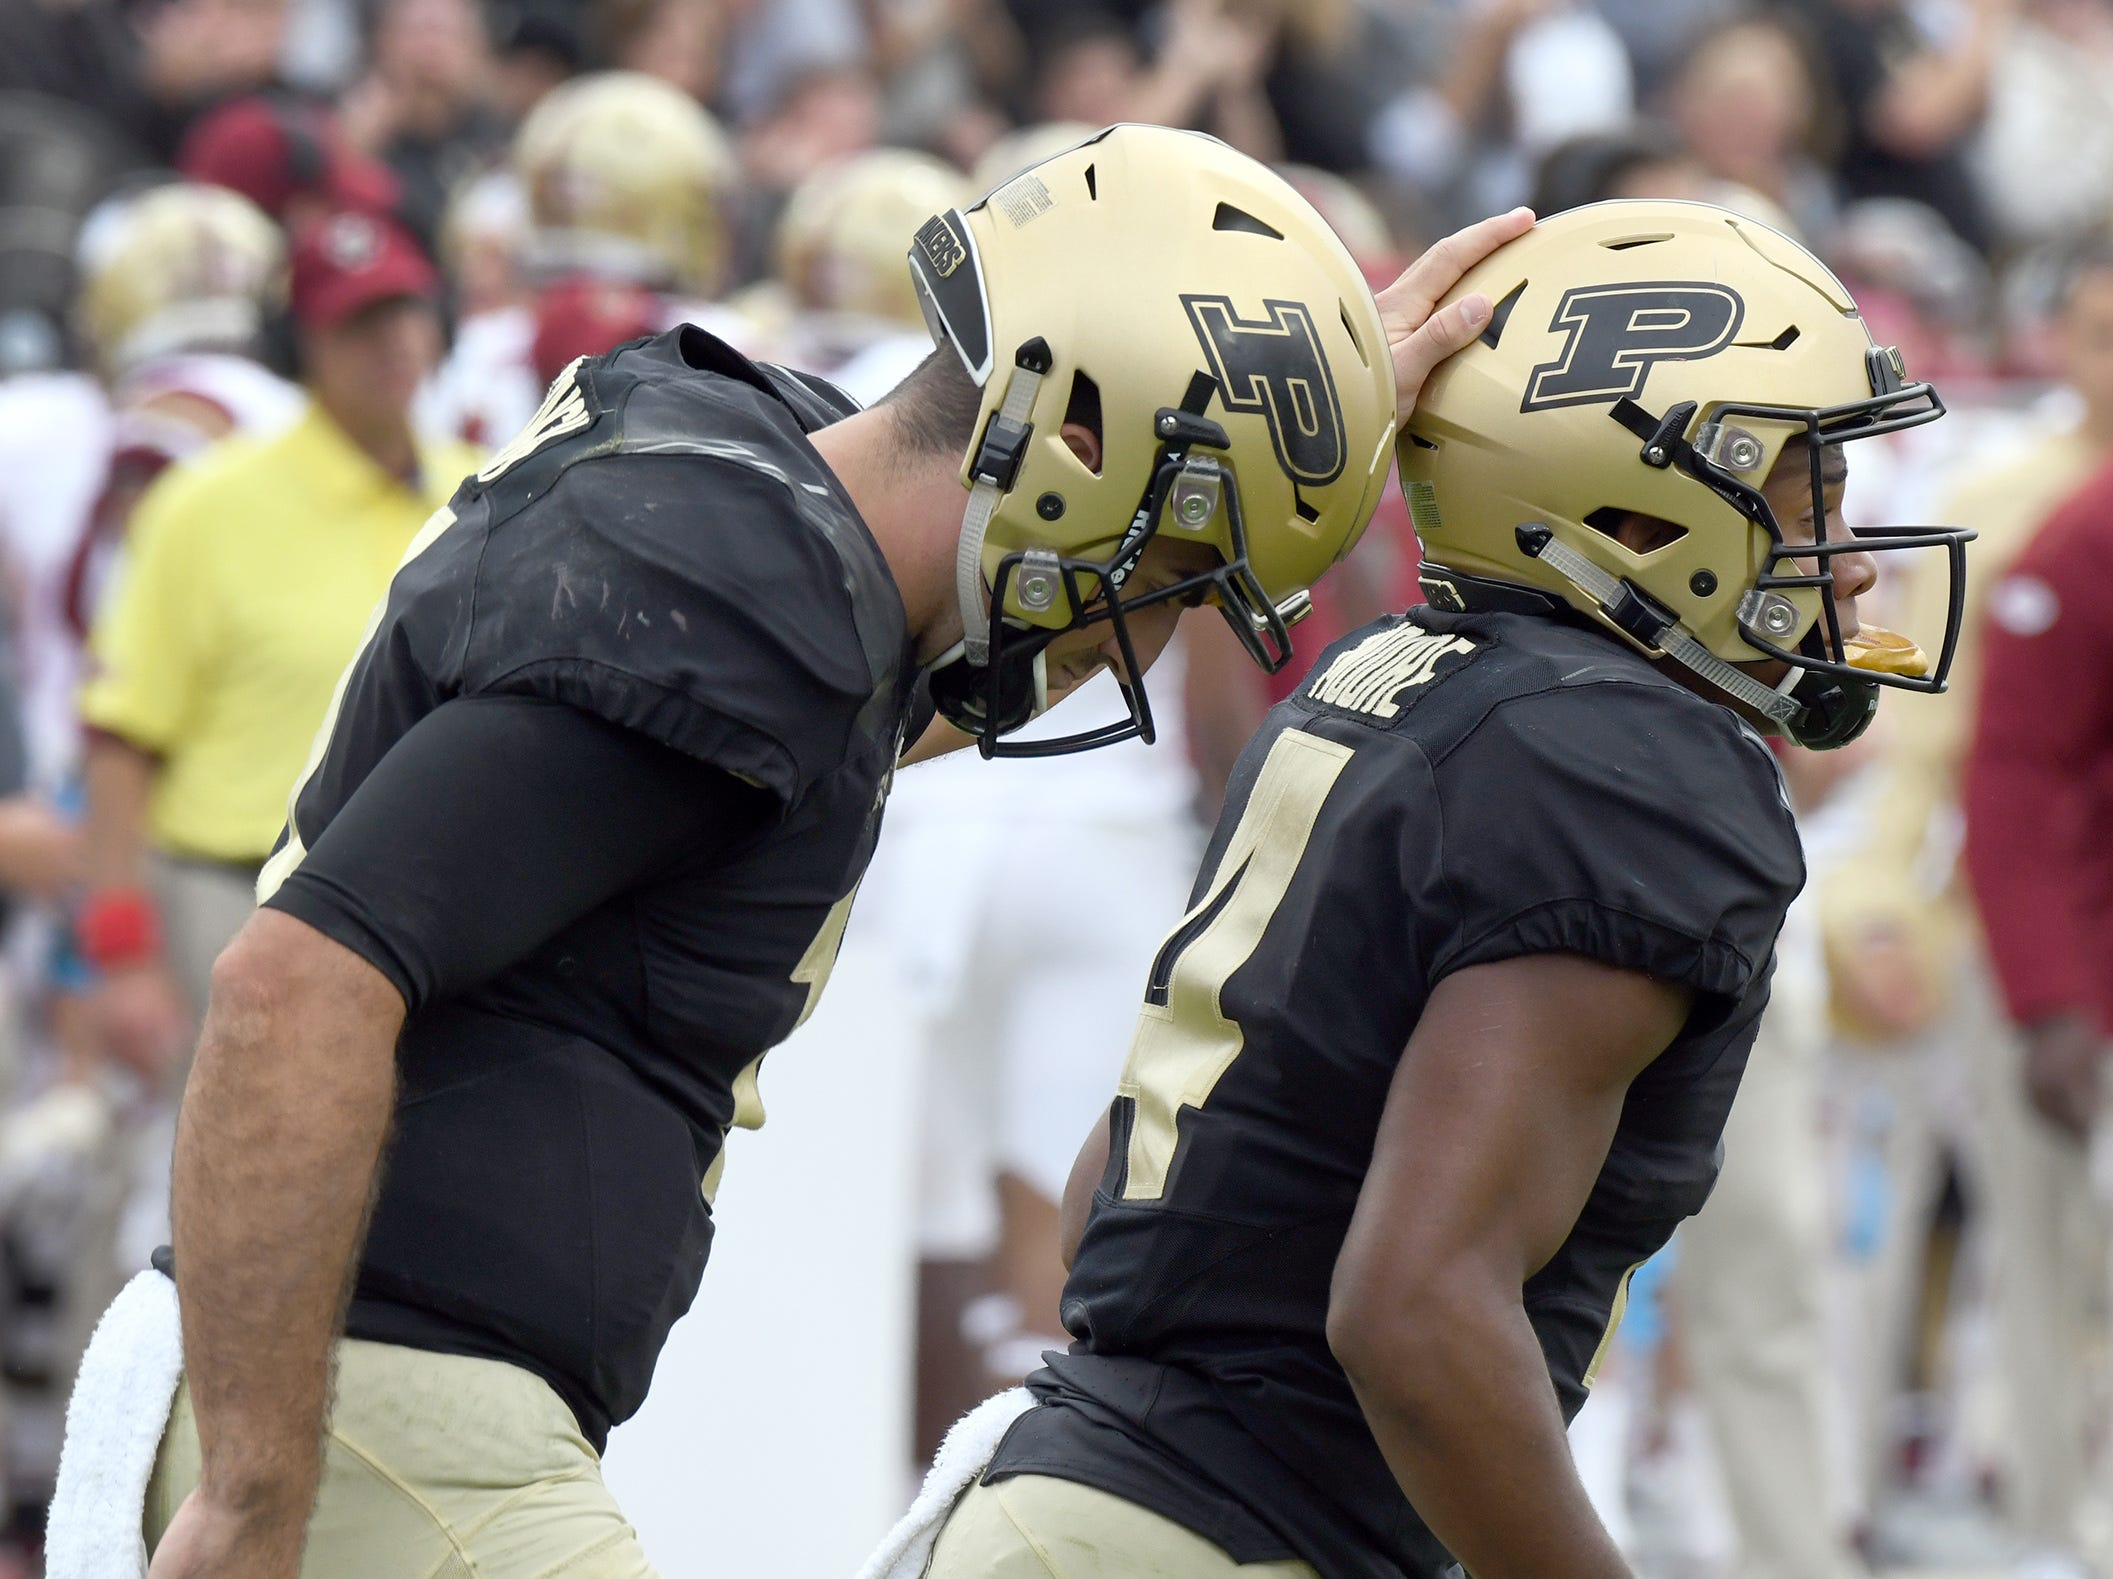 Purdue's David Blough congratulates Rondale Moore after a TD in Purdue's 30-13 win in West Lafayette on Saturday September 22, 2018.